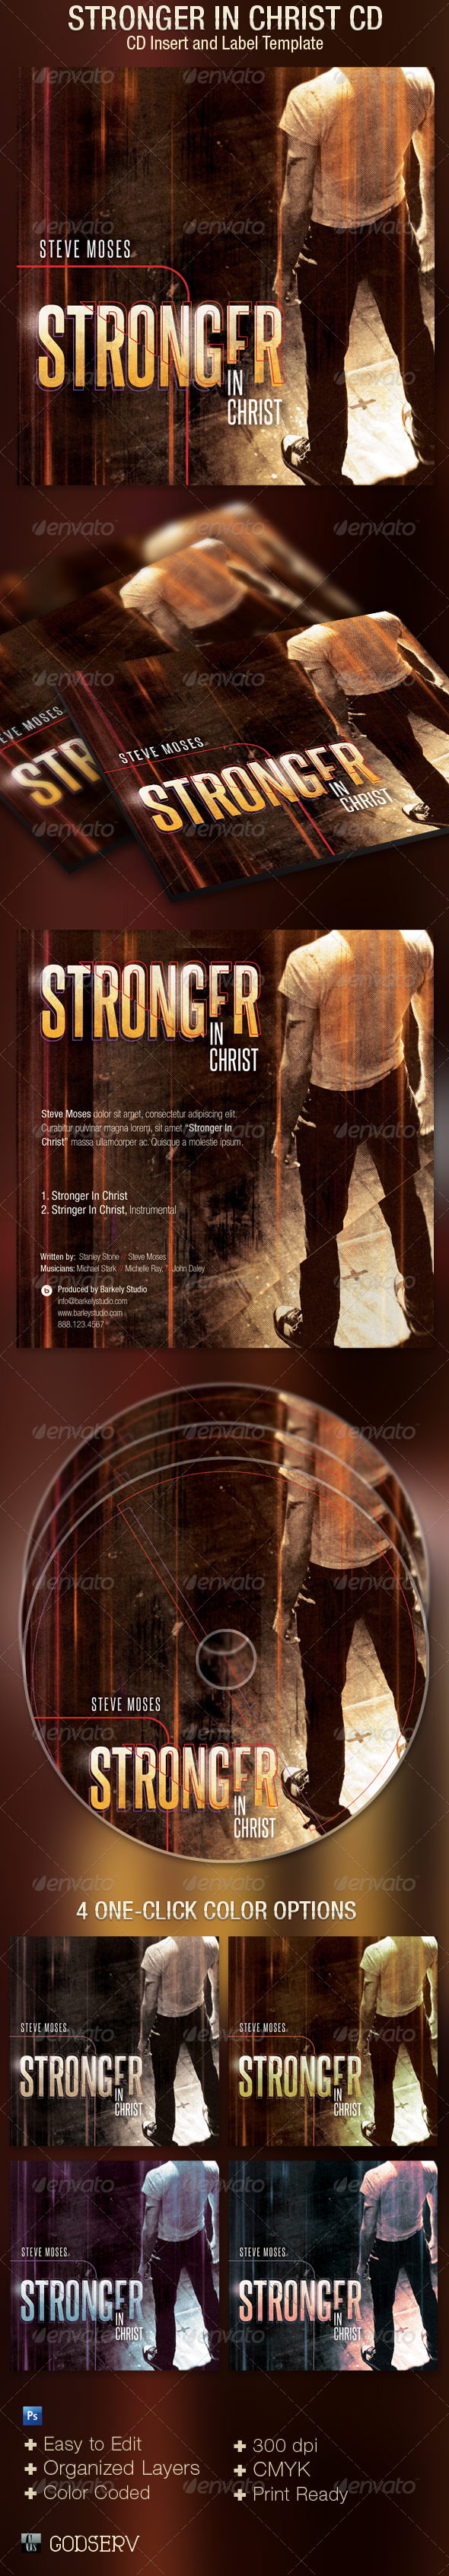 GraphicRiver Stronger In Christ CD Artwork Template 5069473